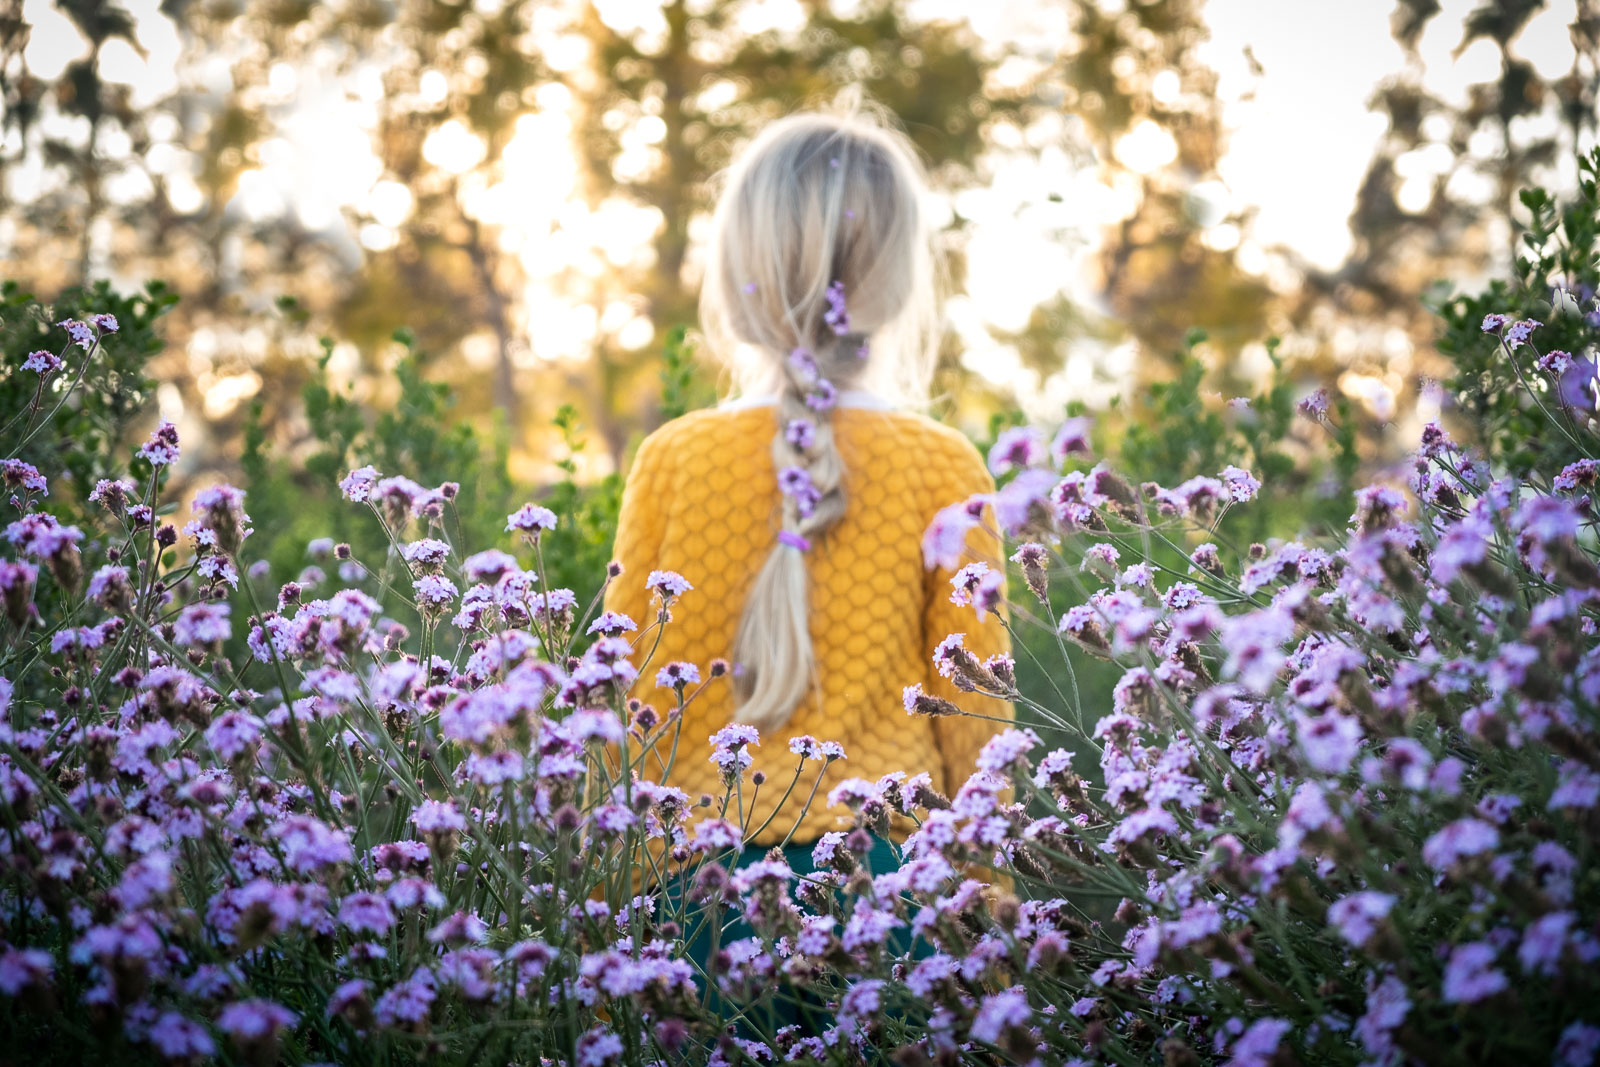 Unexpected Backdrop flower bed of purple flowers girl in yellow shirt karlee hooper